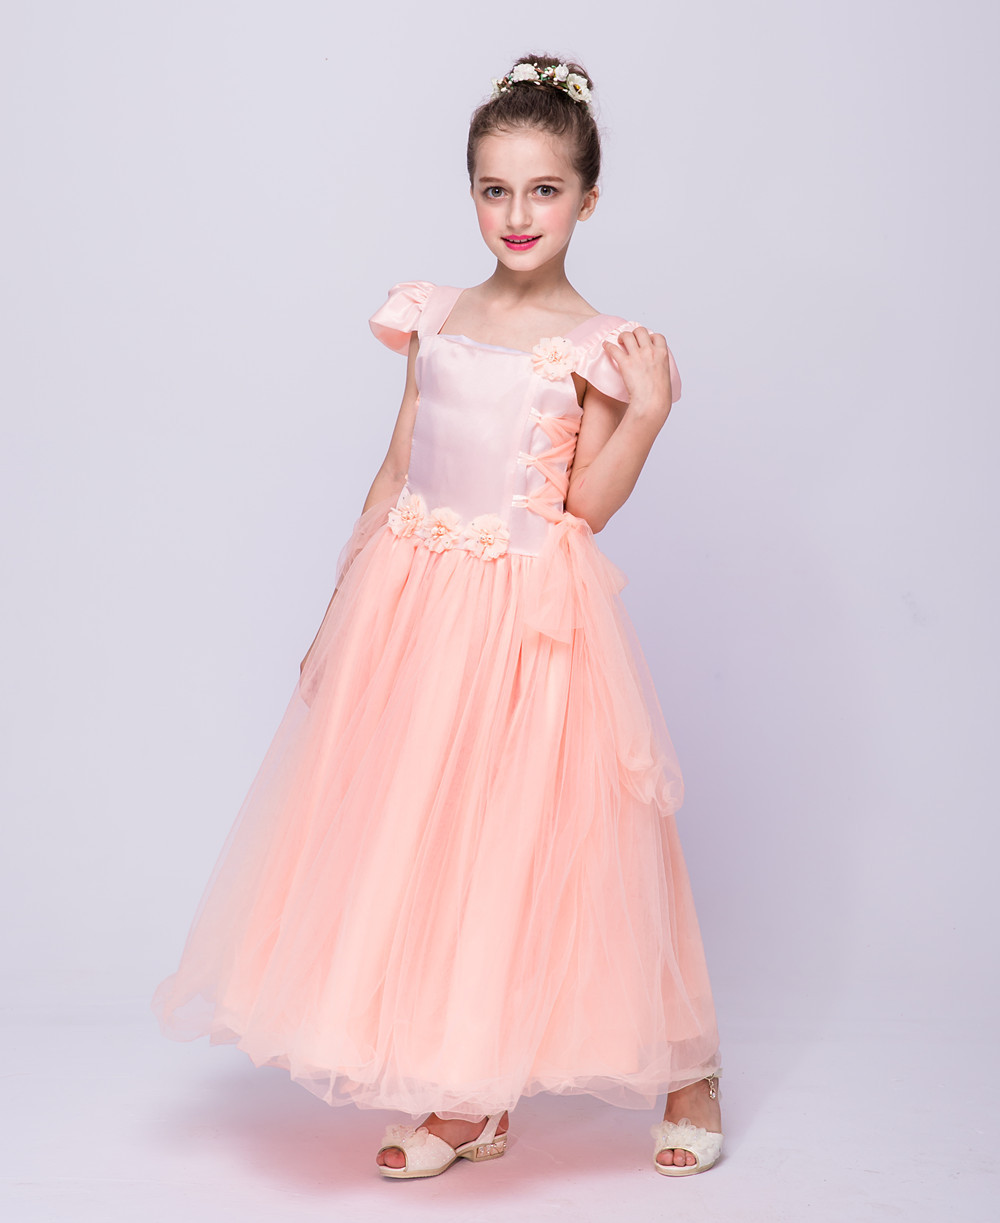 Fashion Flowers Girls Dresses For Wedding Party 4 6 8 10